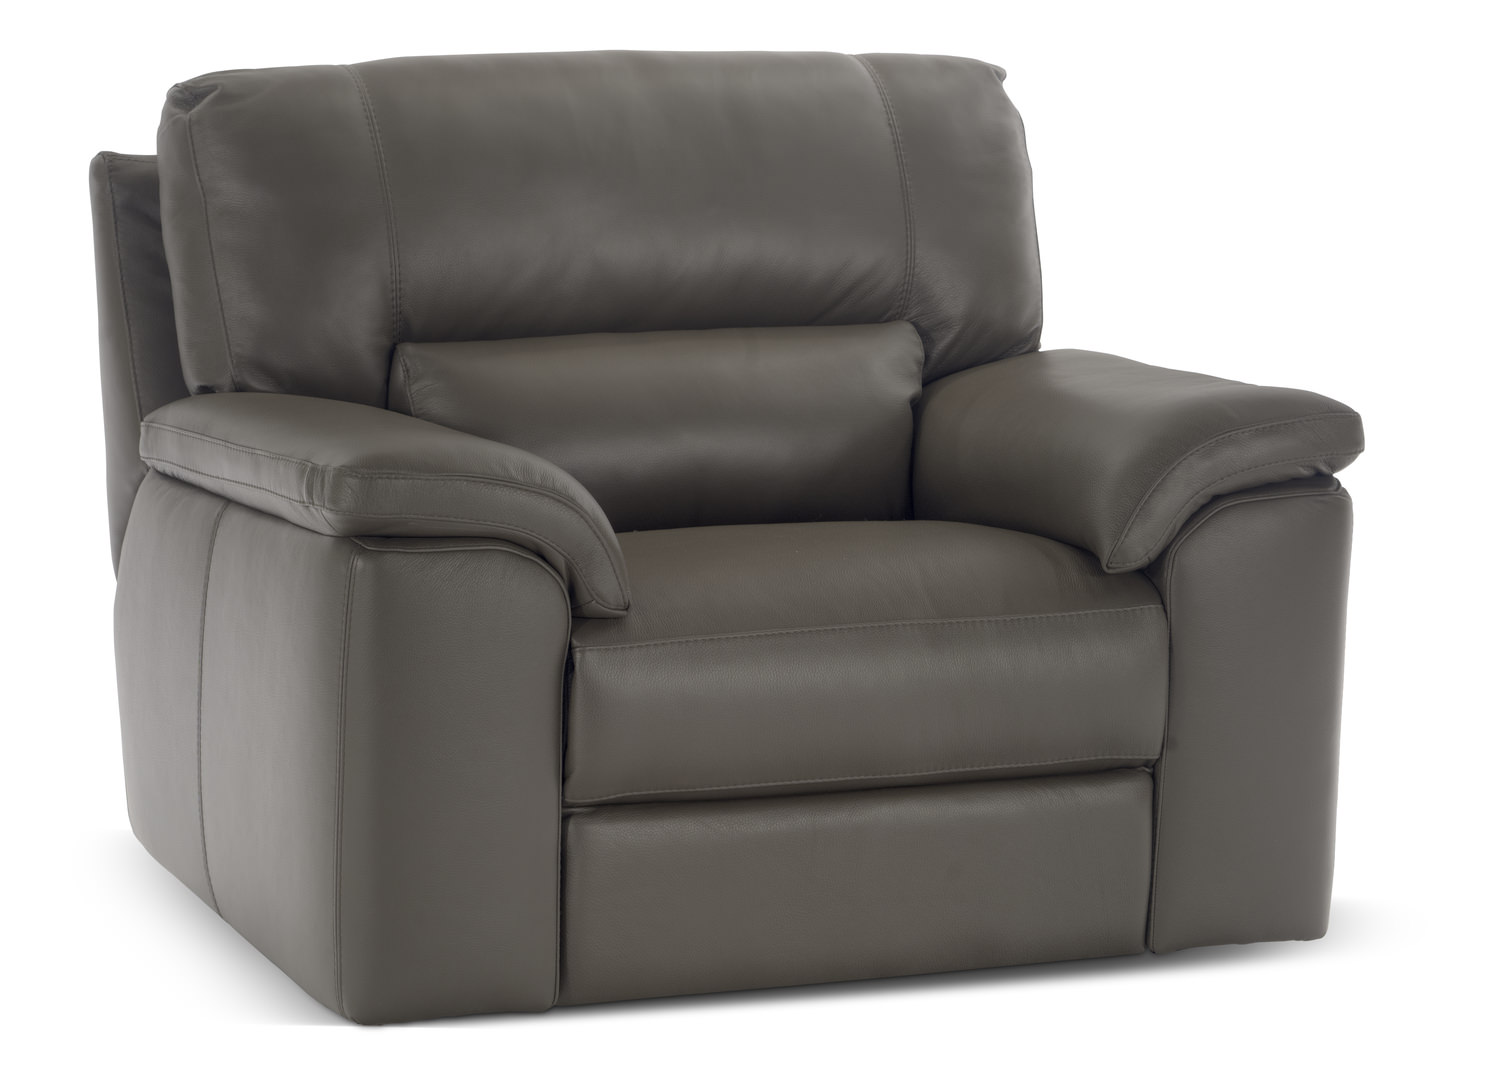 Attractive Lucerne Dual Power Reclining Chair   Mushroom ...